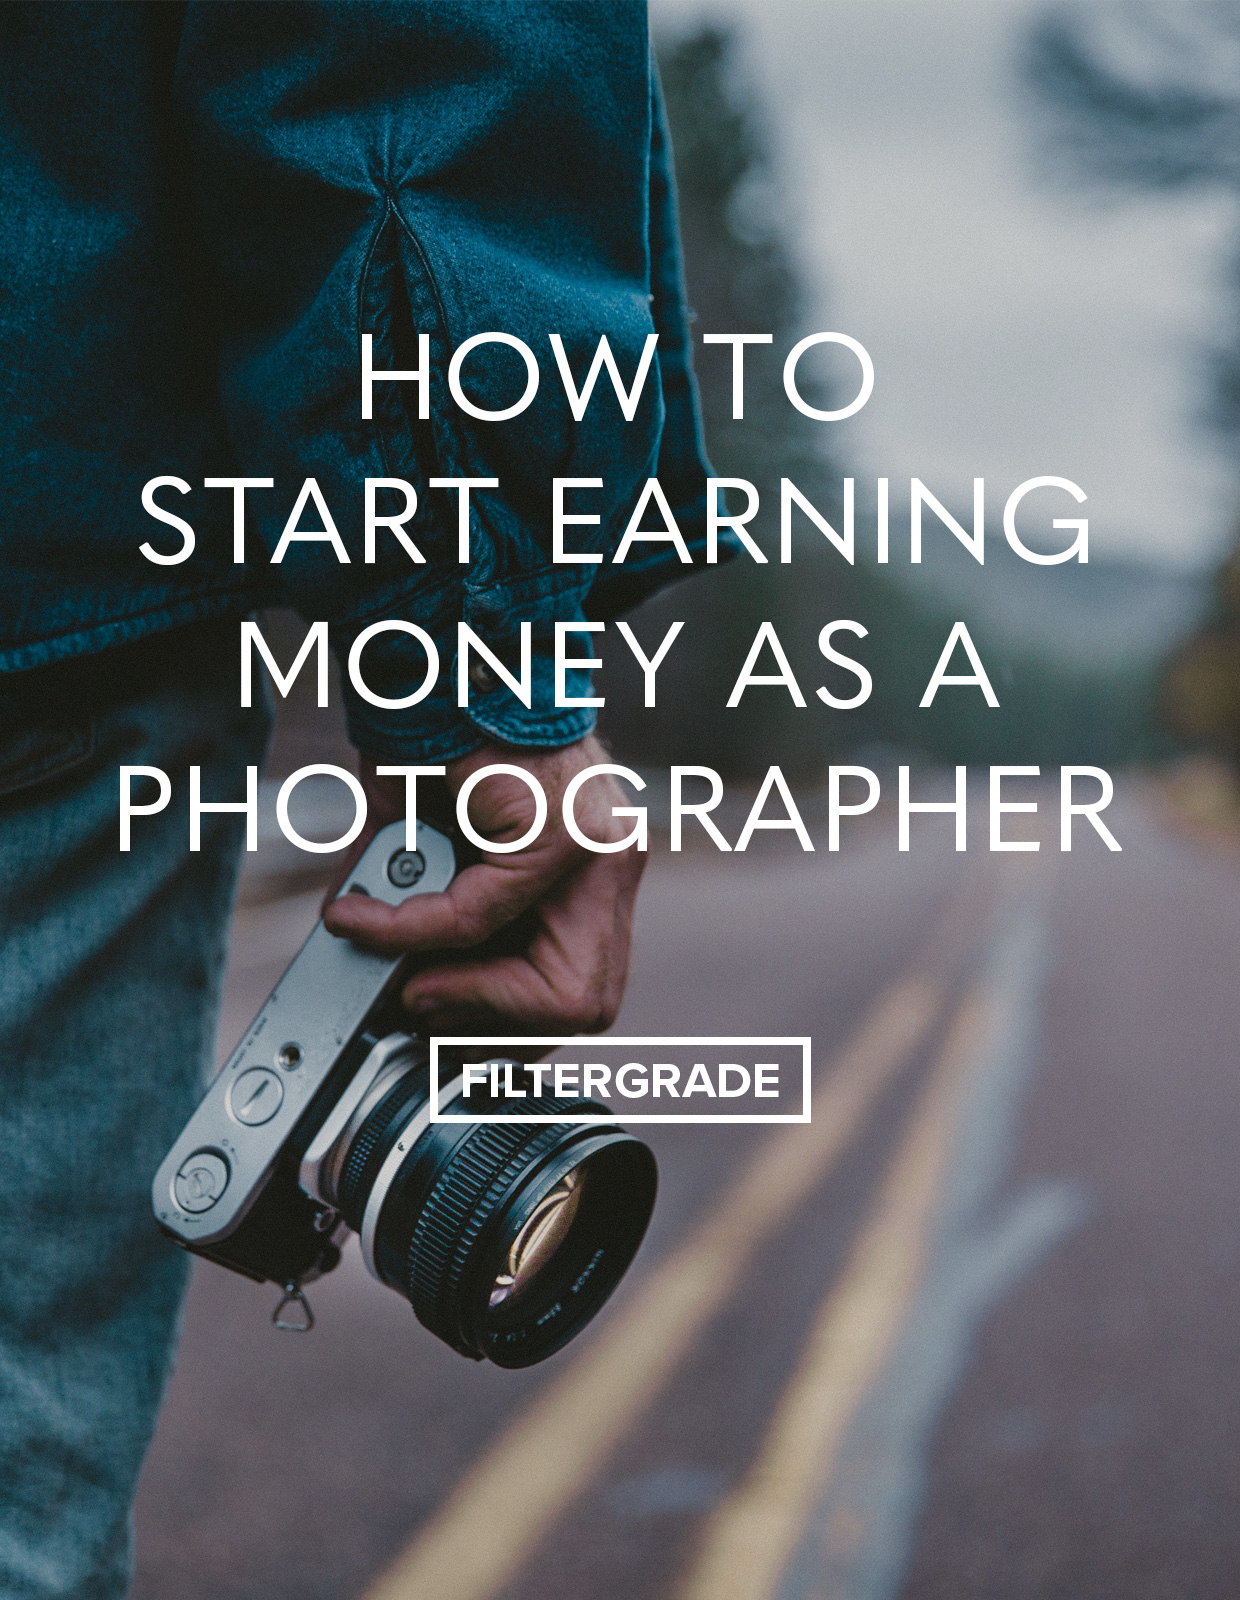 Ideas to help you start earning money as a photographer.